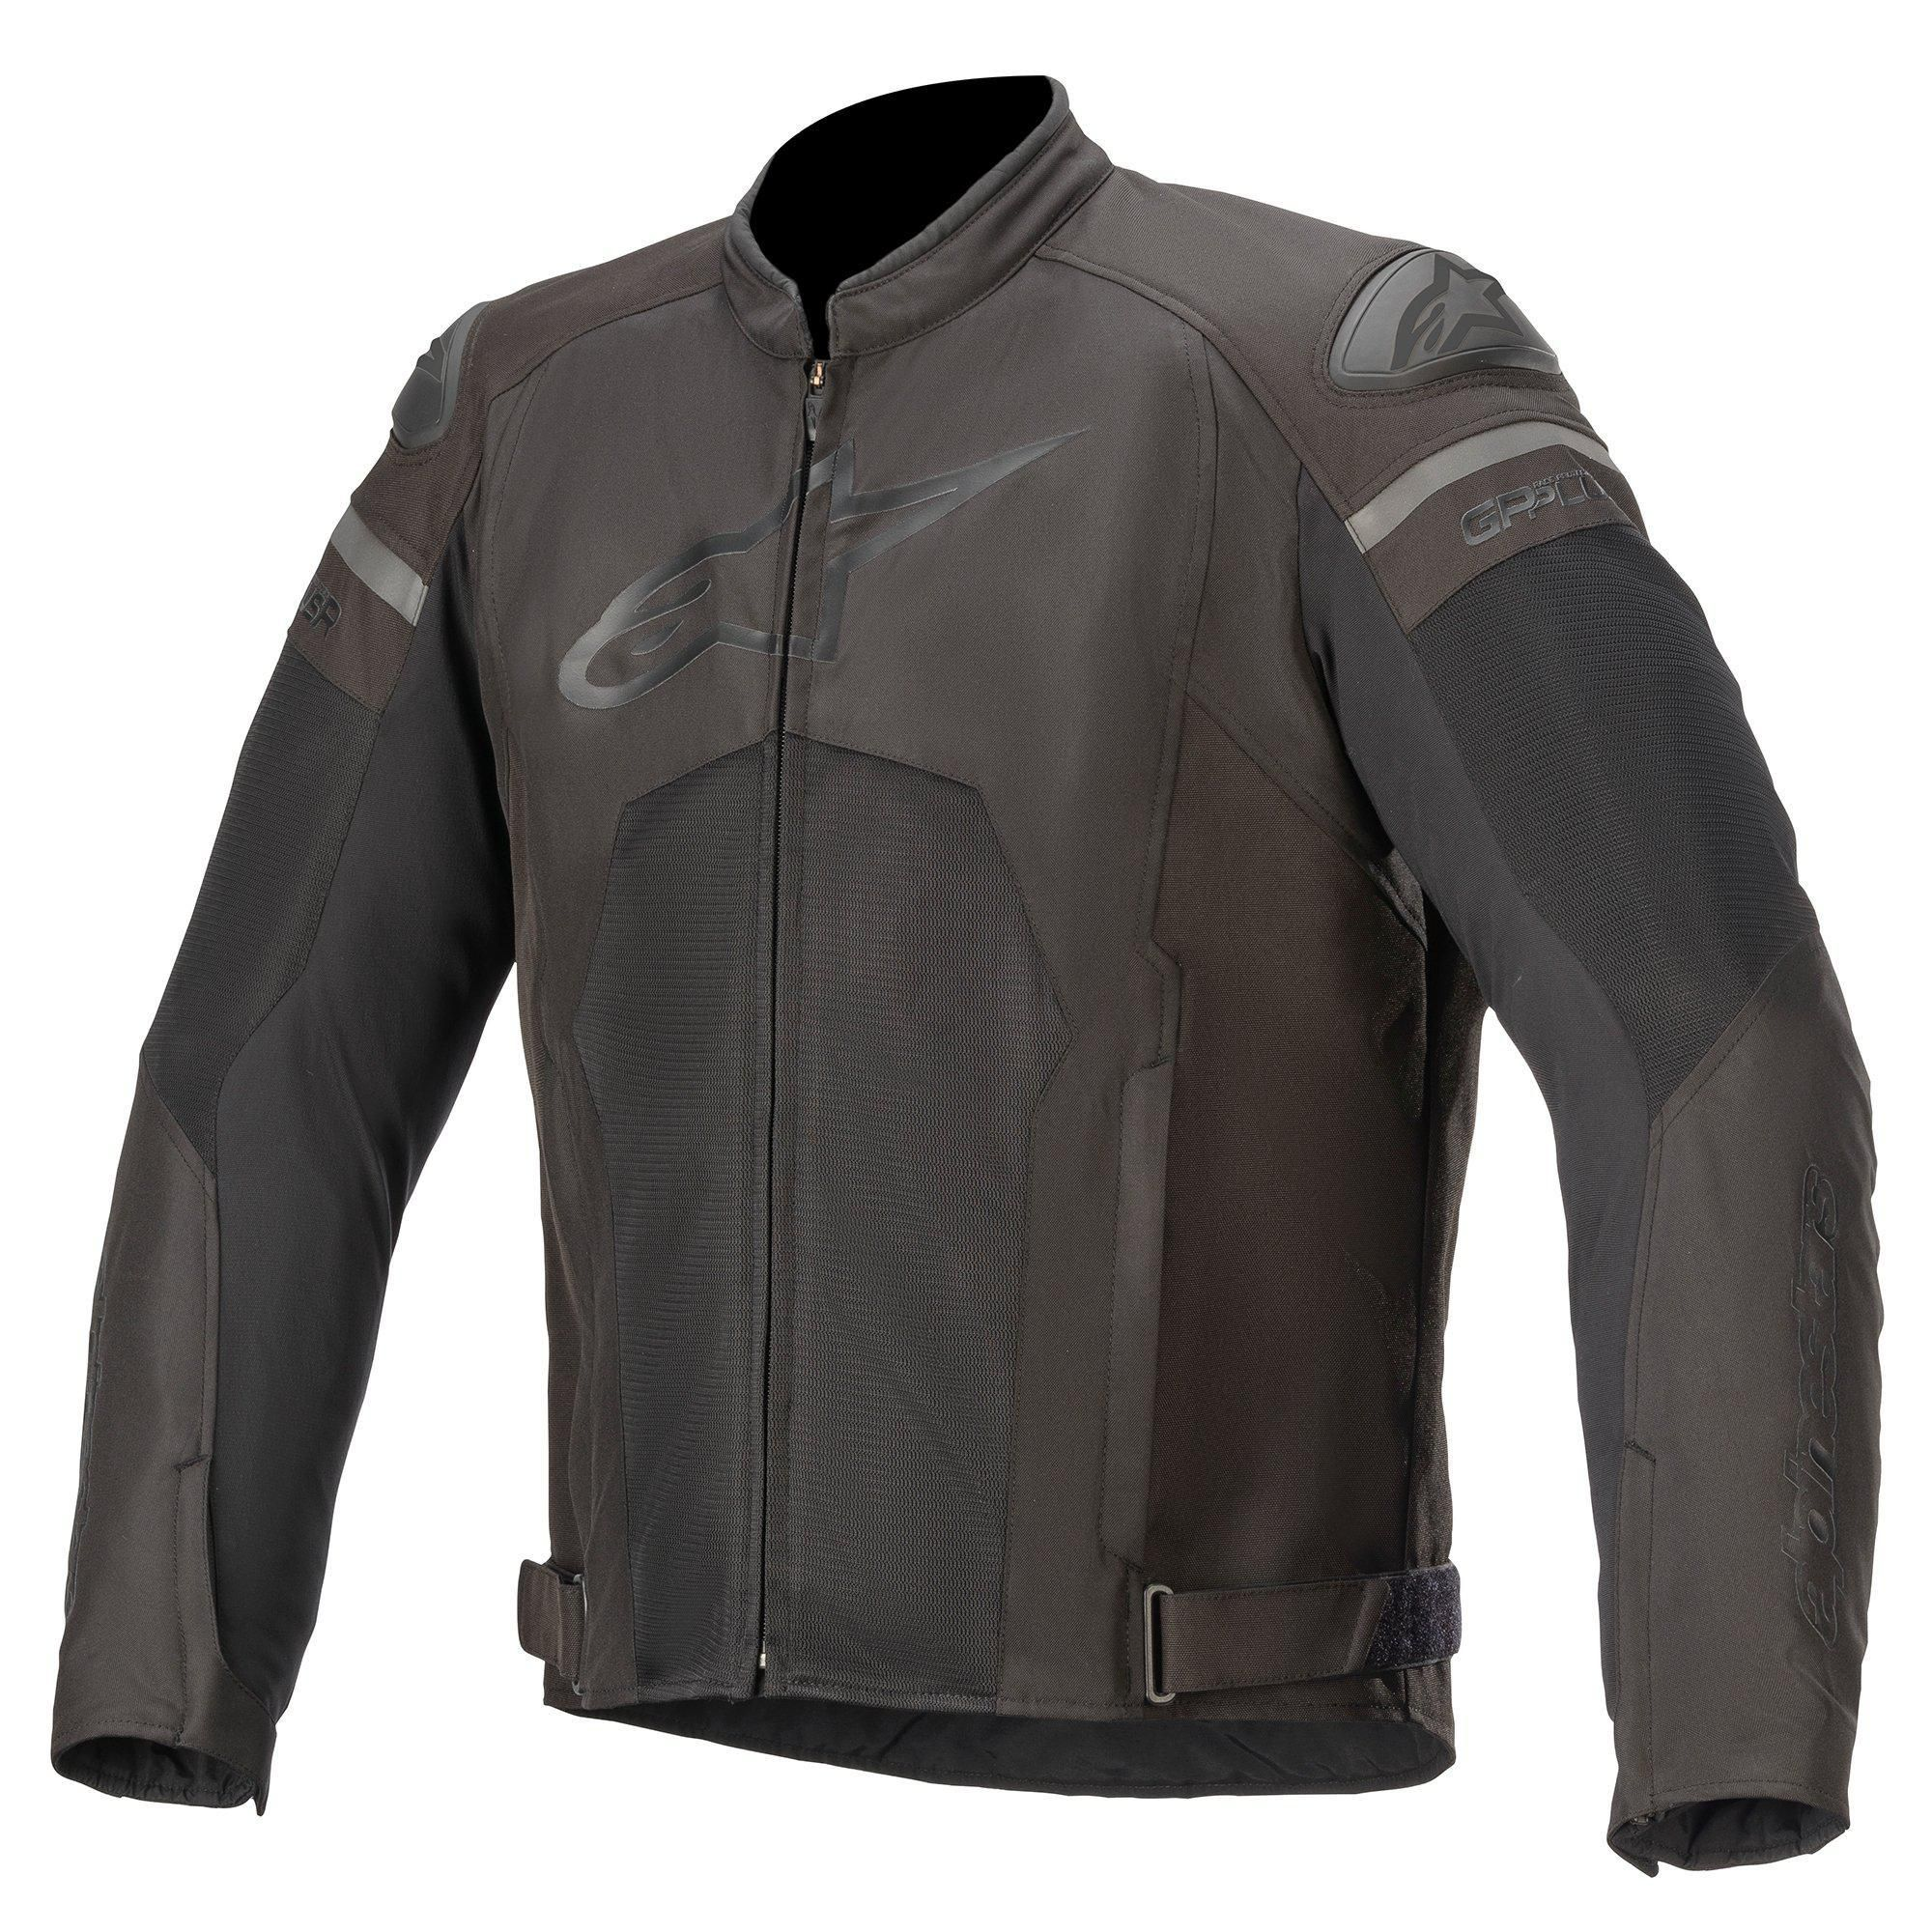 ALPINESTARS T-GP PLUS R V3 AIR JACKET - BLACKE